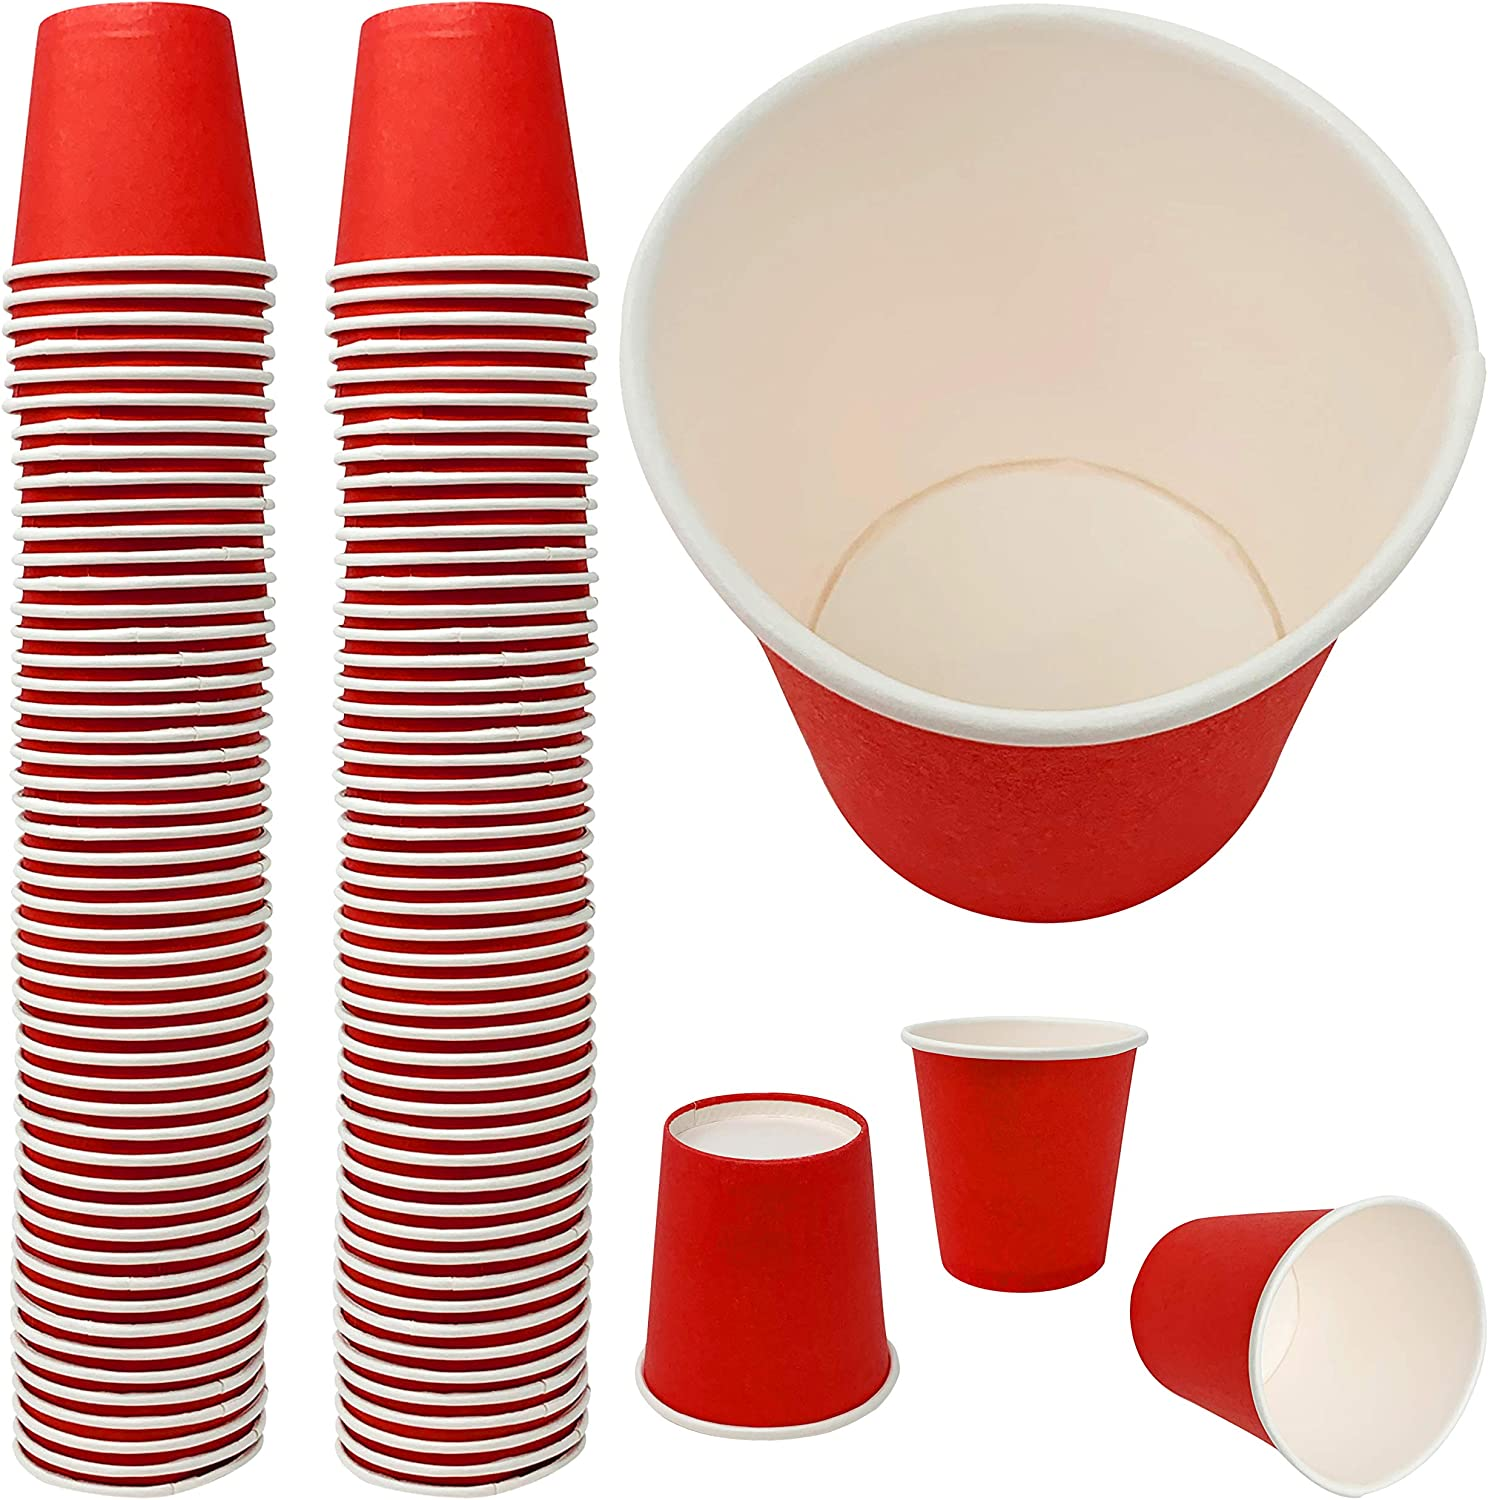 Disposable Shot Glass - Max All items in the store 51% OFF Eco-Friendly Paper Solo oz 2 Mini Red